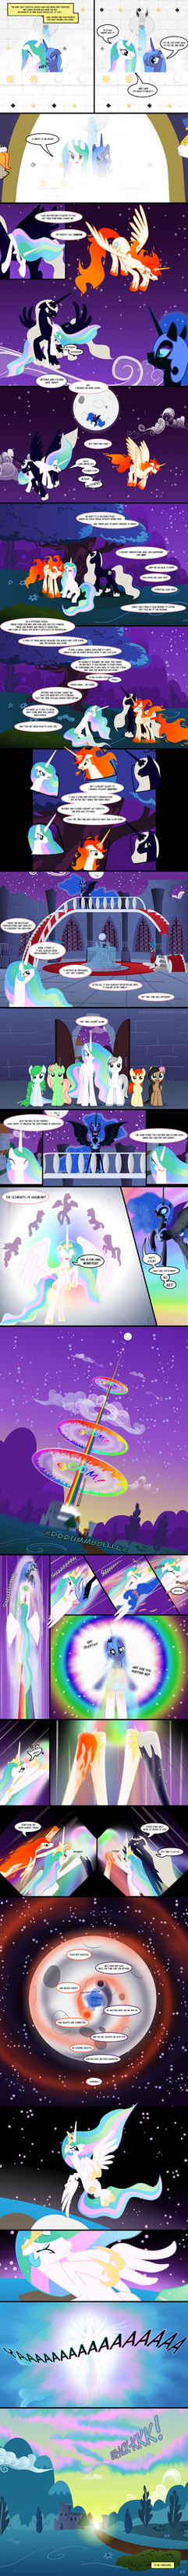 The Real Story - P3, The Moon by Nimaru